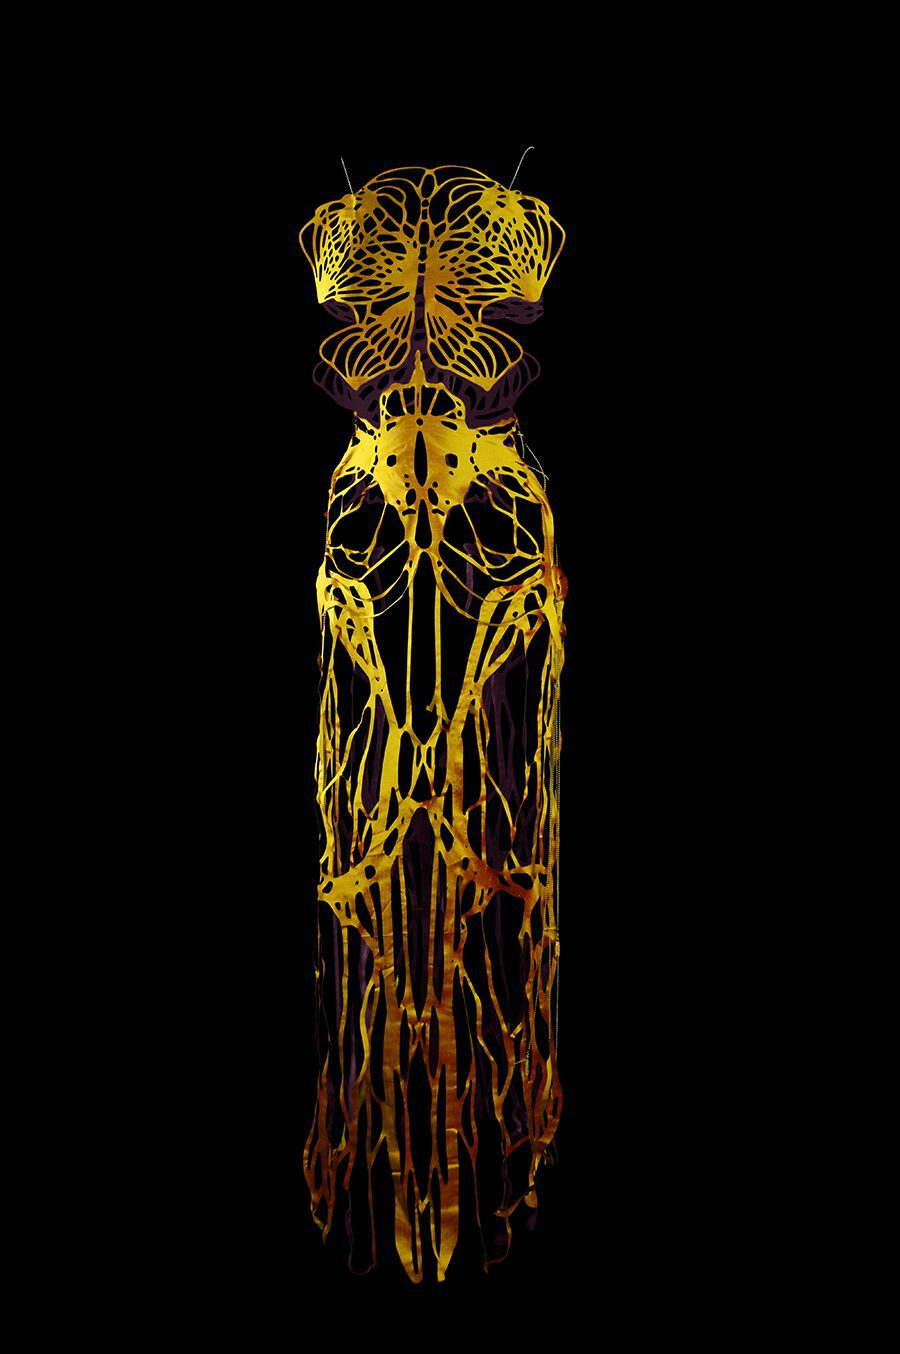 2017-Amy-Karle-Internal-Collection-yellow-silk-dress-based-on-ligaments-02